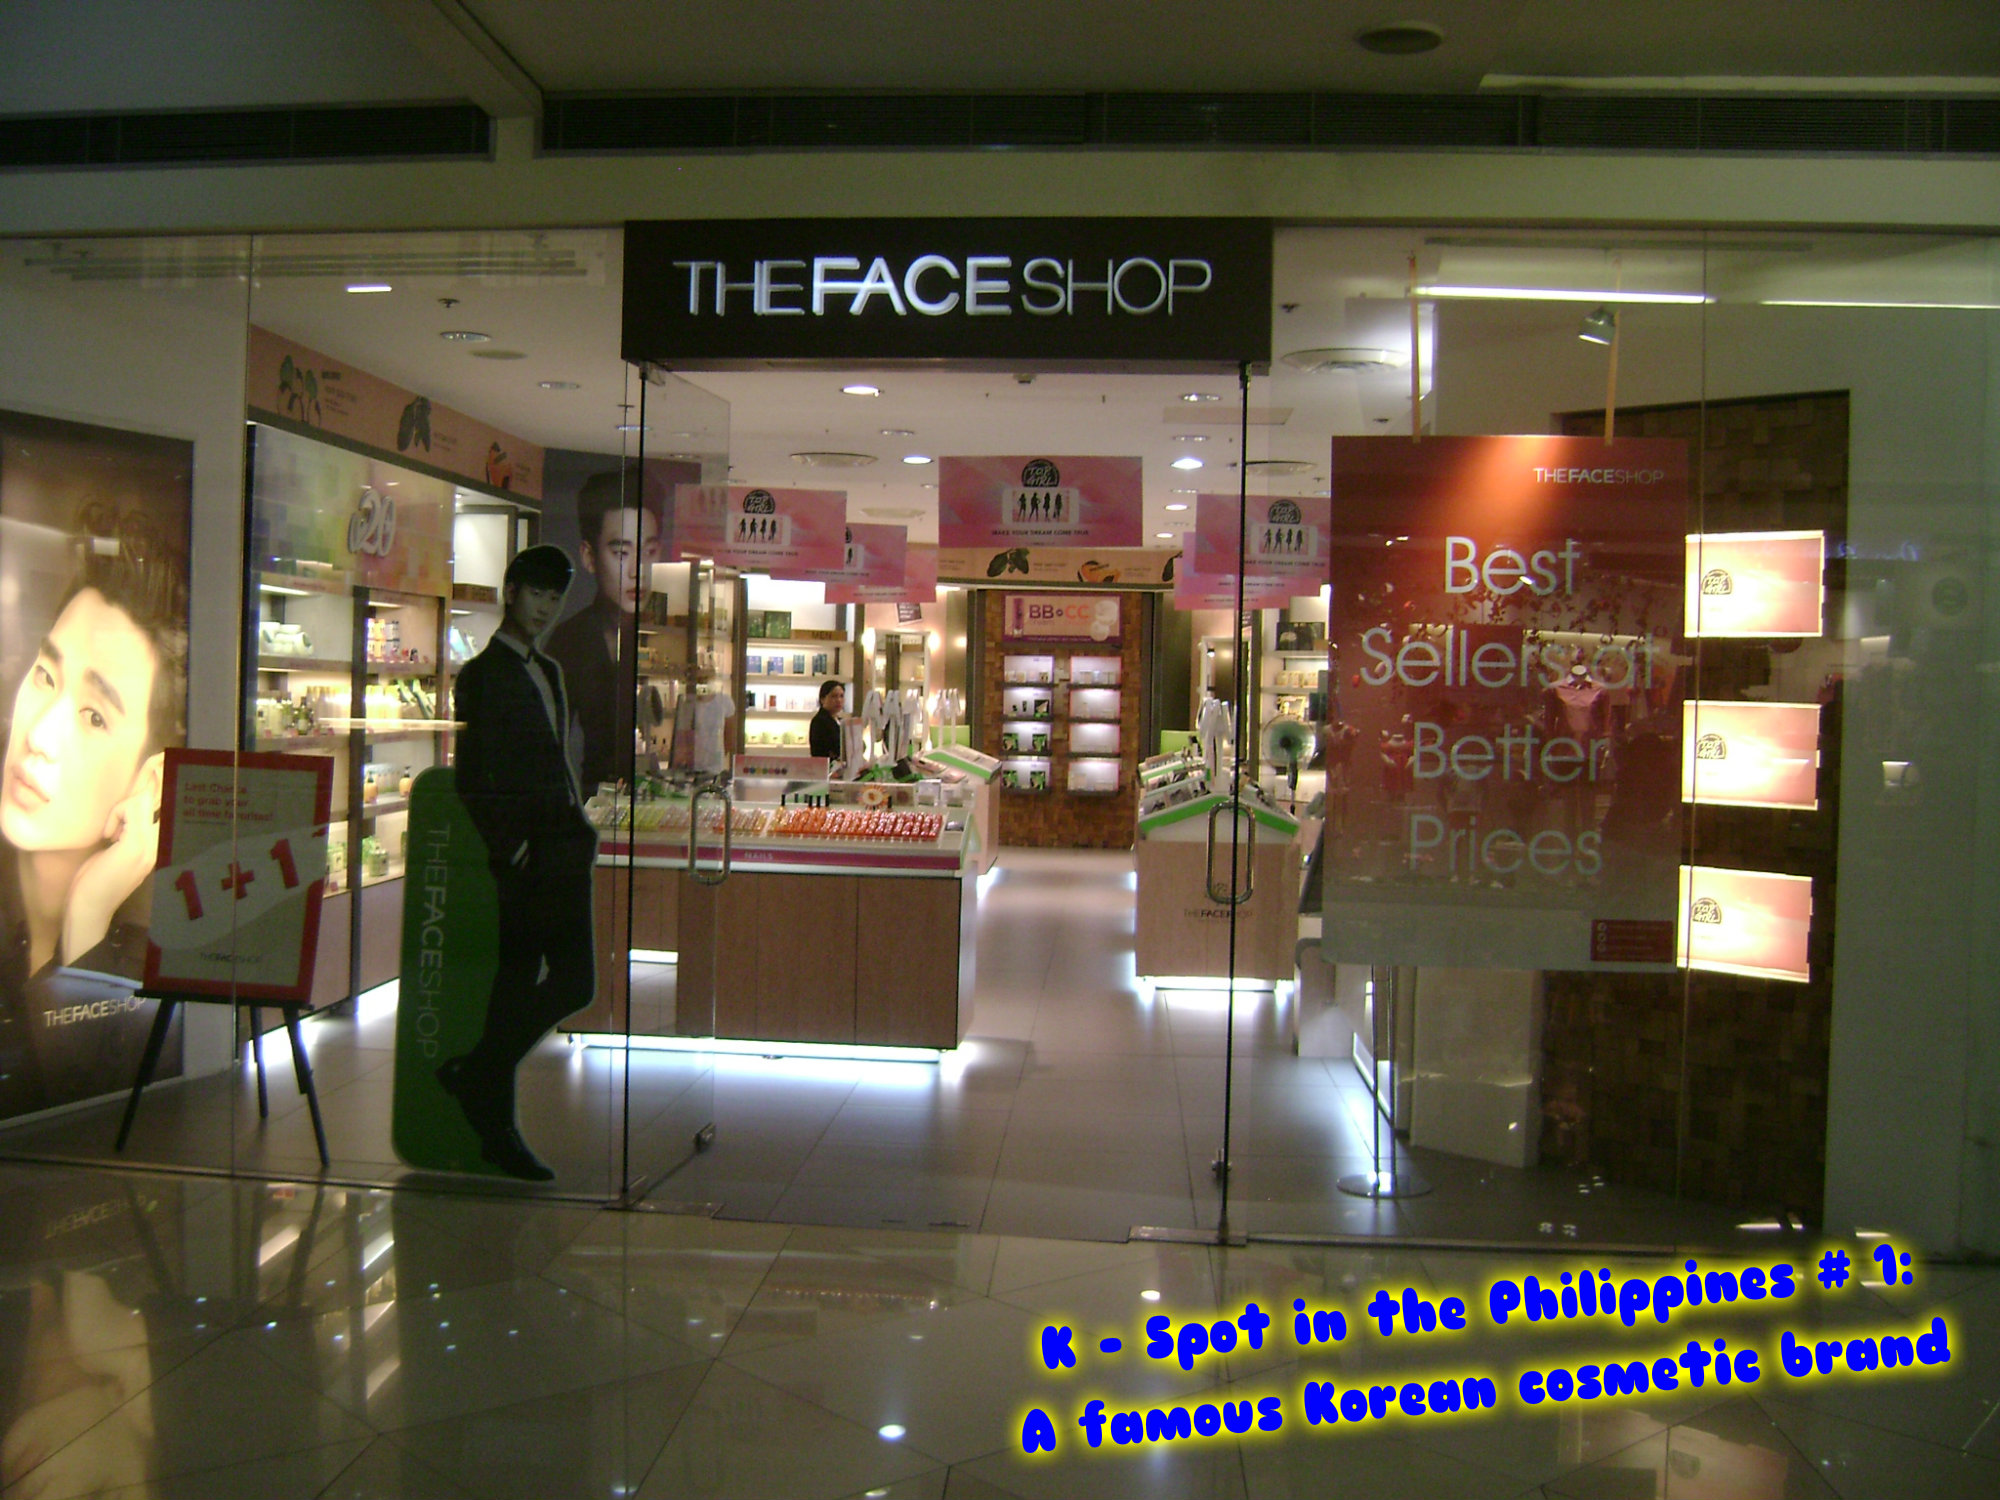 Discover Korea in my Country : K-Spot in the Philippines